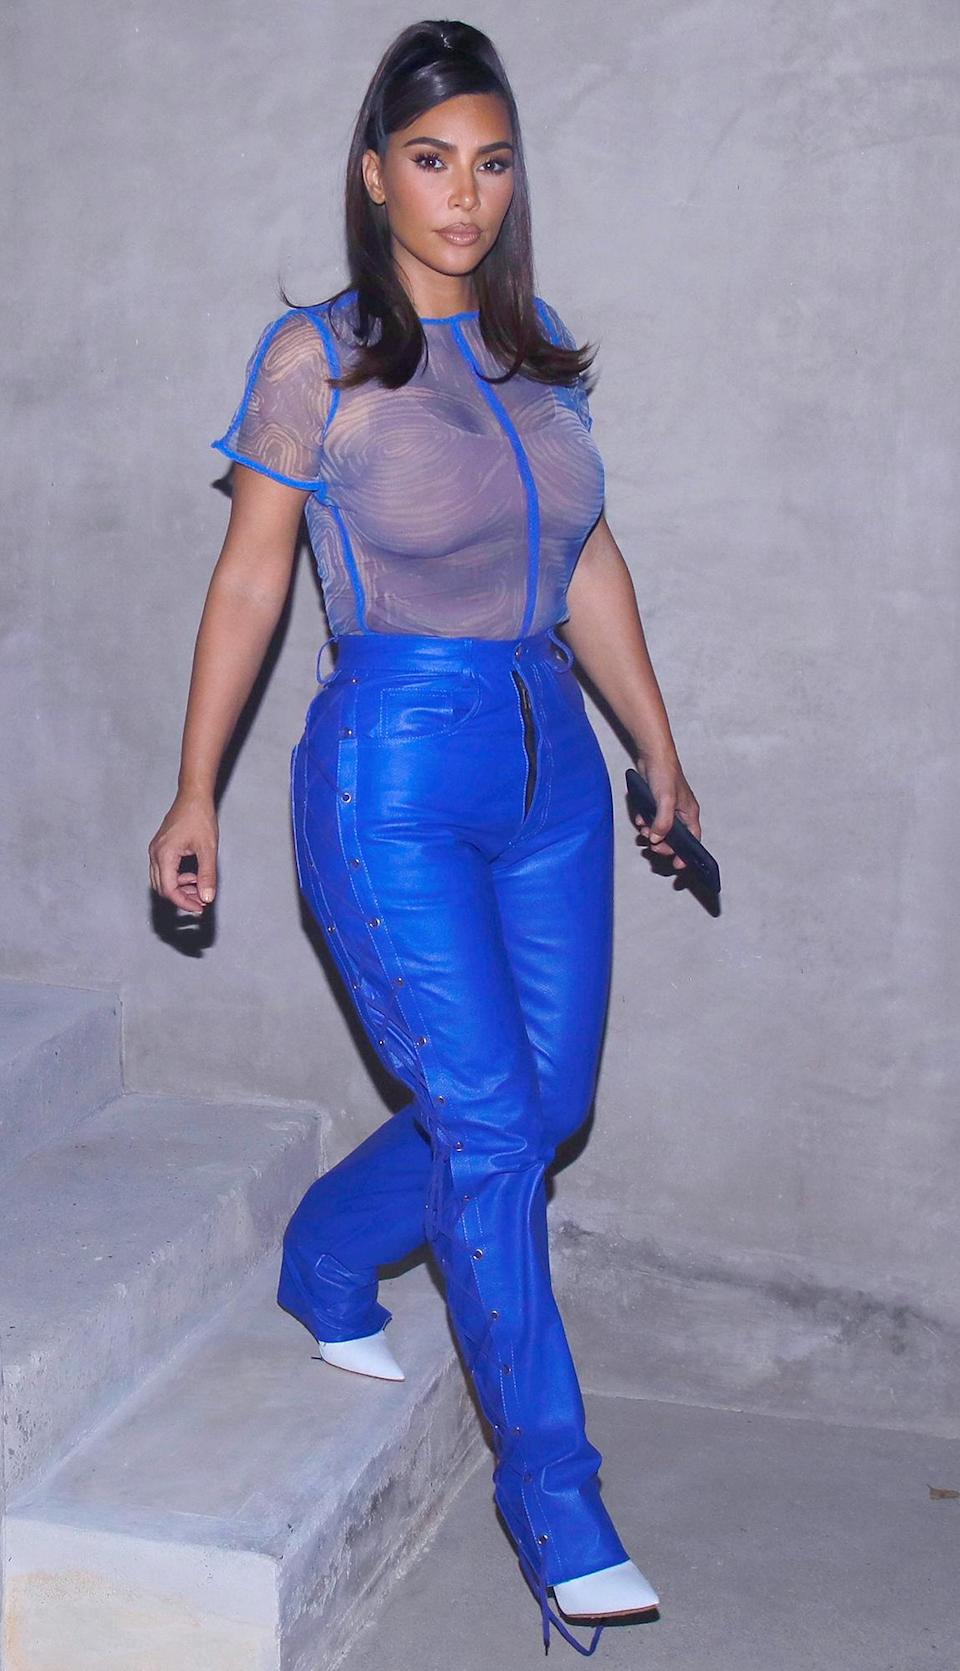 <p>Kim Kardashian West is seen leaving a friend's house wearing a chic cobalt blue sheer top and matching leather trousers on Tuesday in L.A.</p>